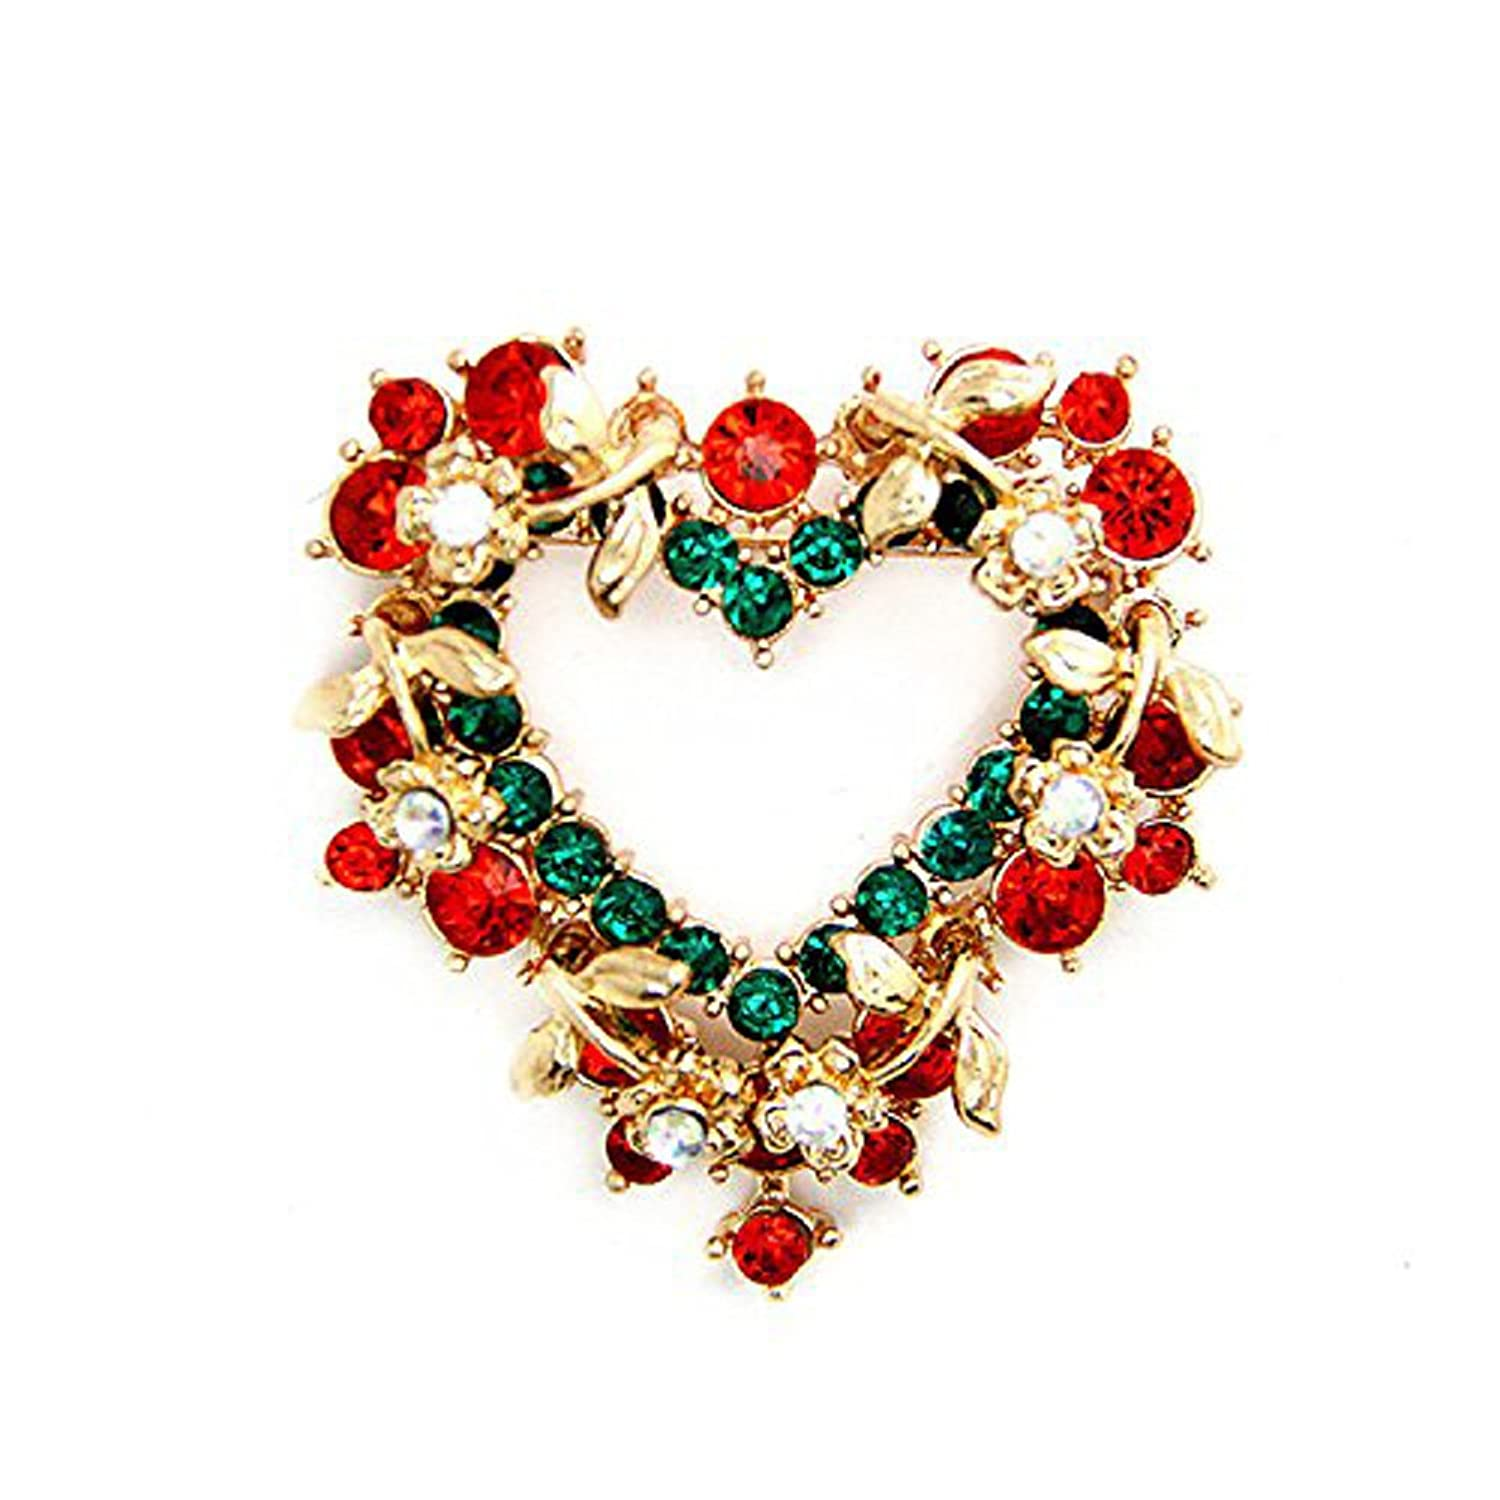 Genluna Red Heart Crystal Christmas Wreath Brooch Pin for Christmas Theme Party Decoration Gift